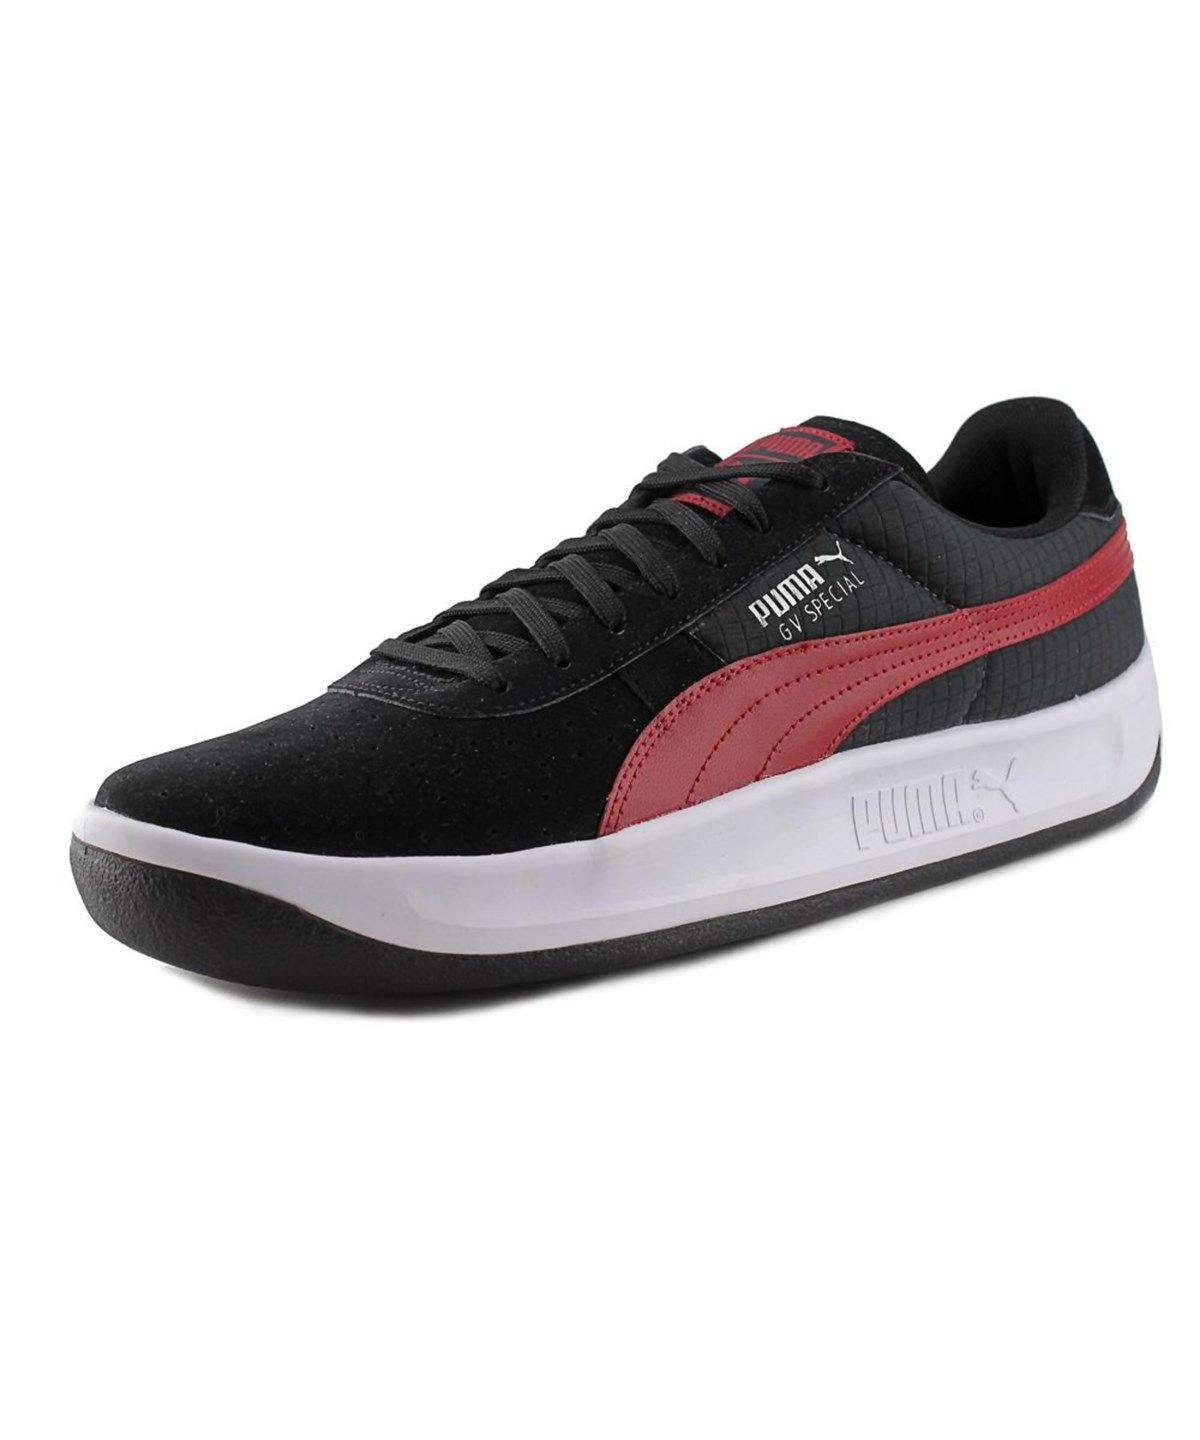 40cdd1f78c8a PUMA Puma Basket Classic Cvs Blur Men Round Toe Synthetic White Walking Shoe .   puma  shoes  sneakers